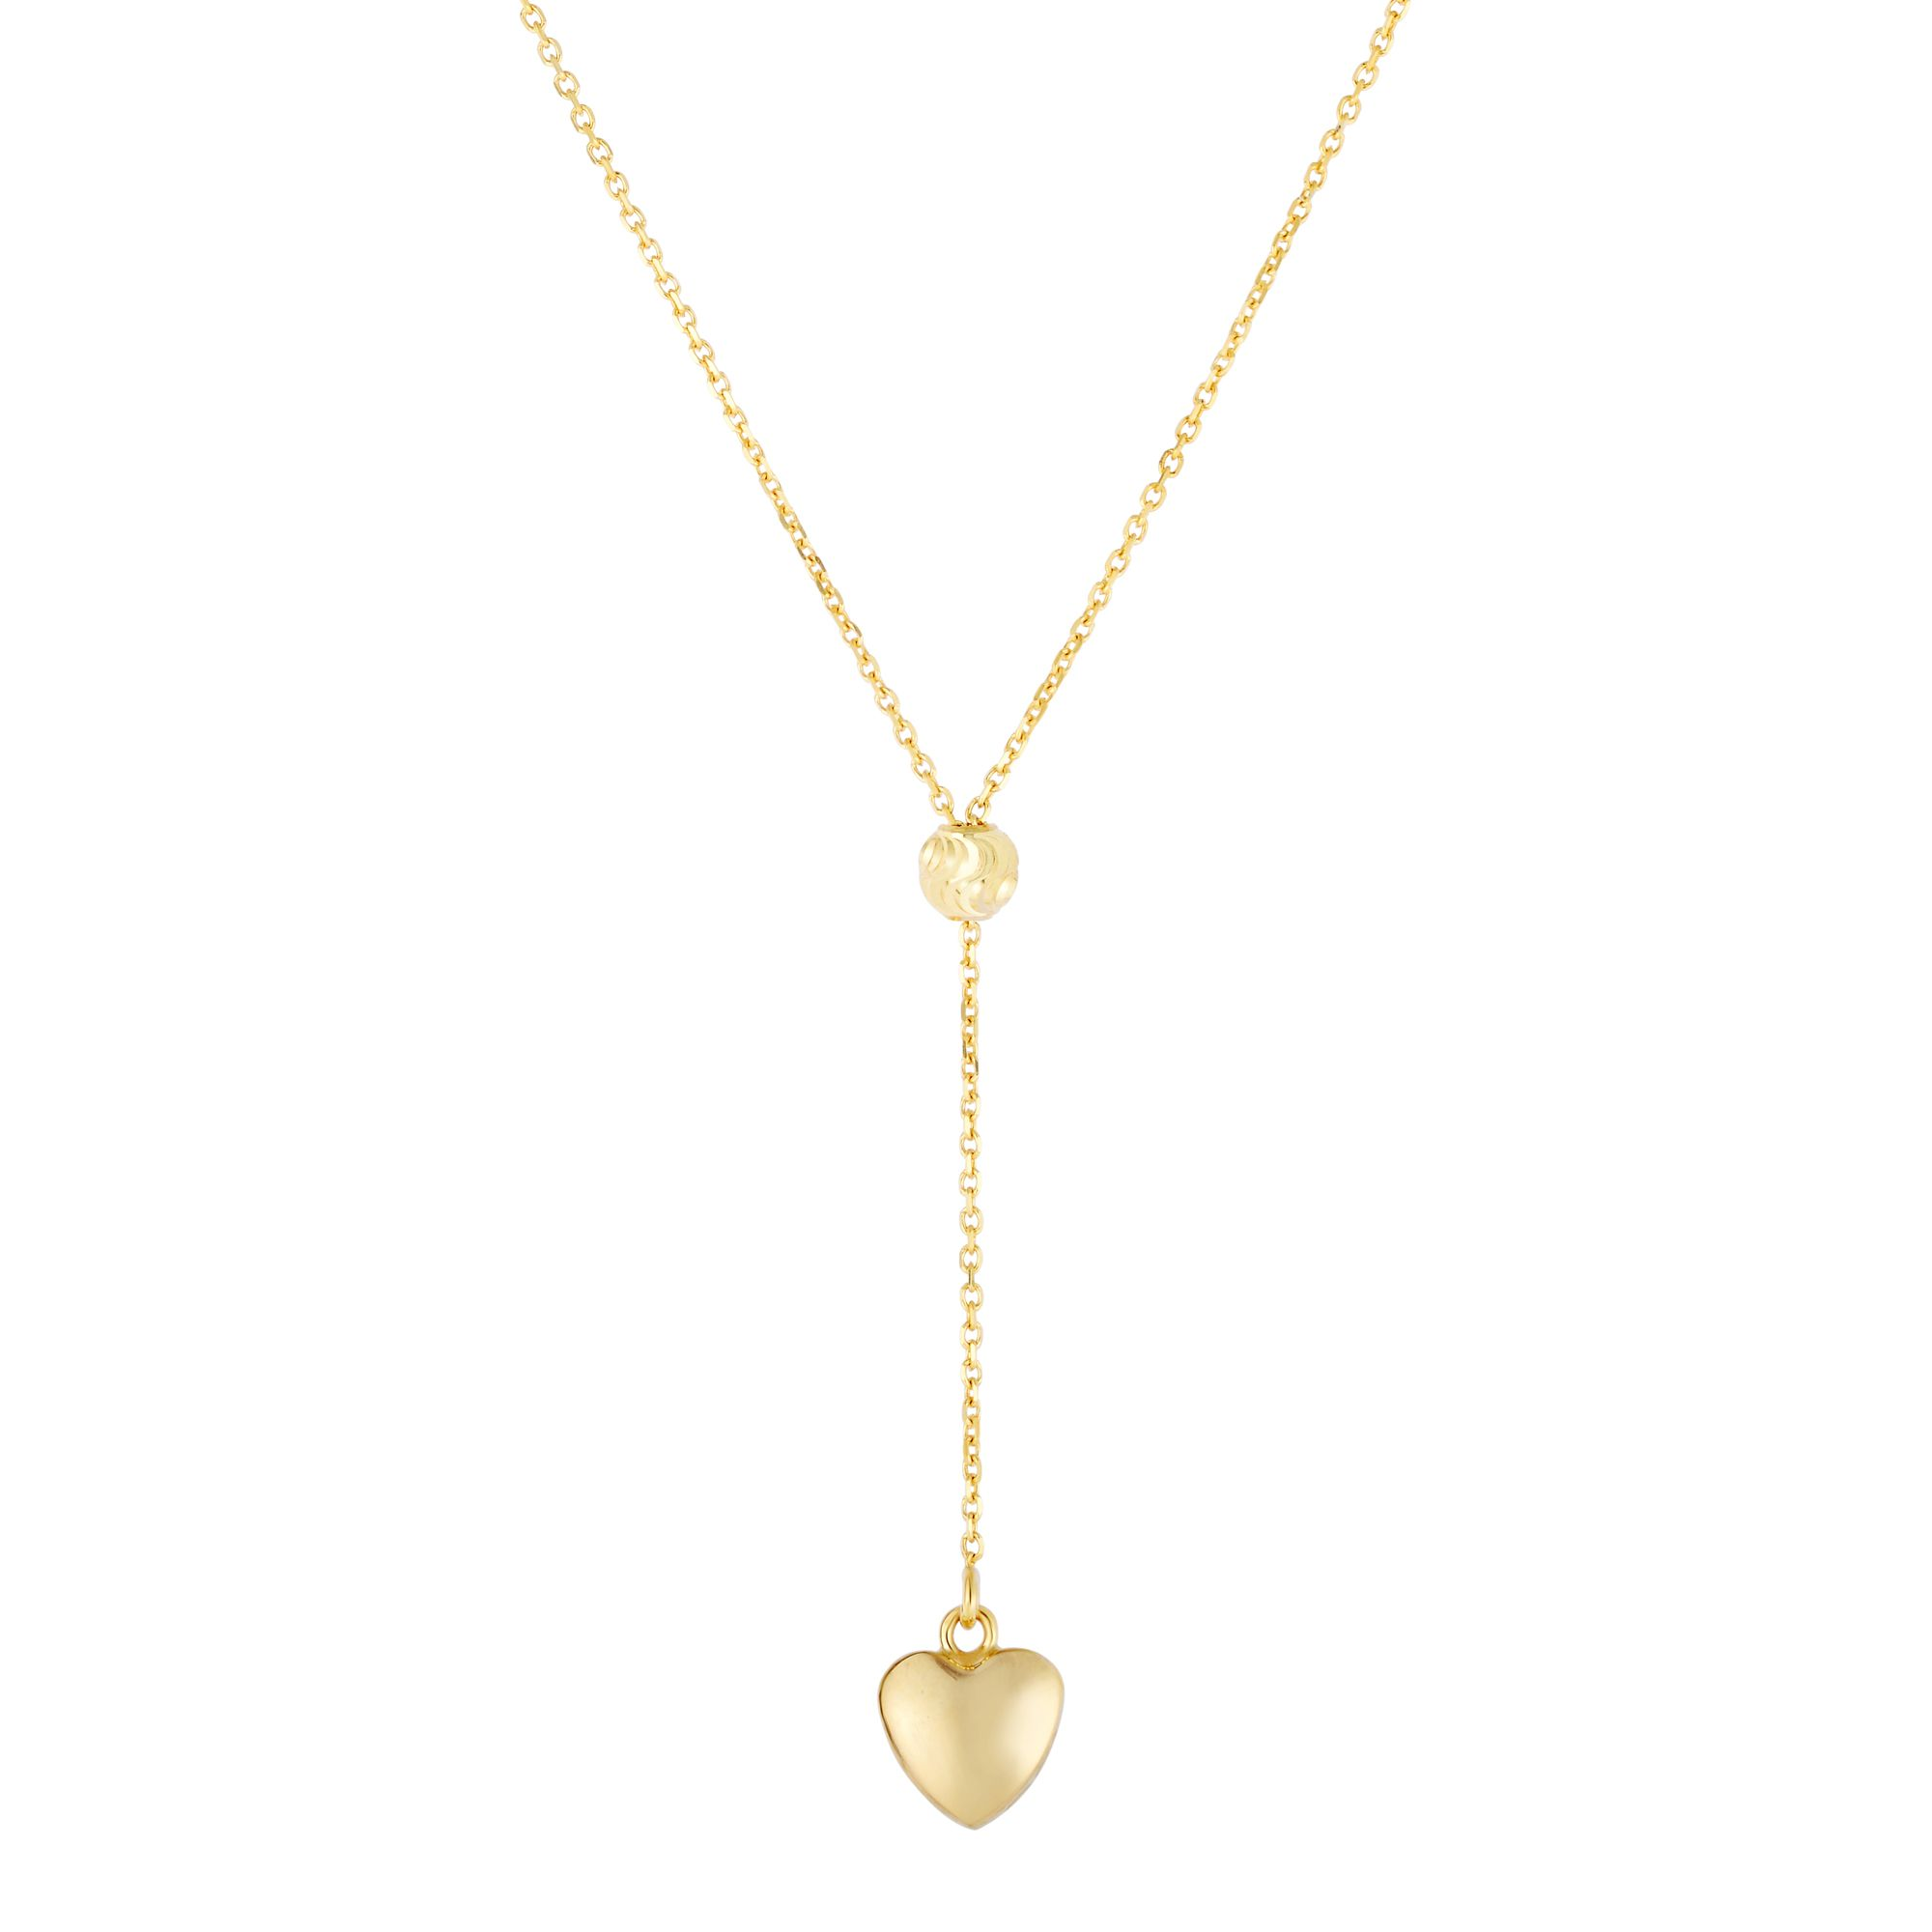 14K Yellow Gold Shiny Heart Drop on Link Necklace with Lobster Clasp:Stationary Bead. Not Moveable!! by Goldia